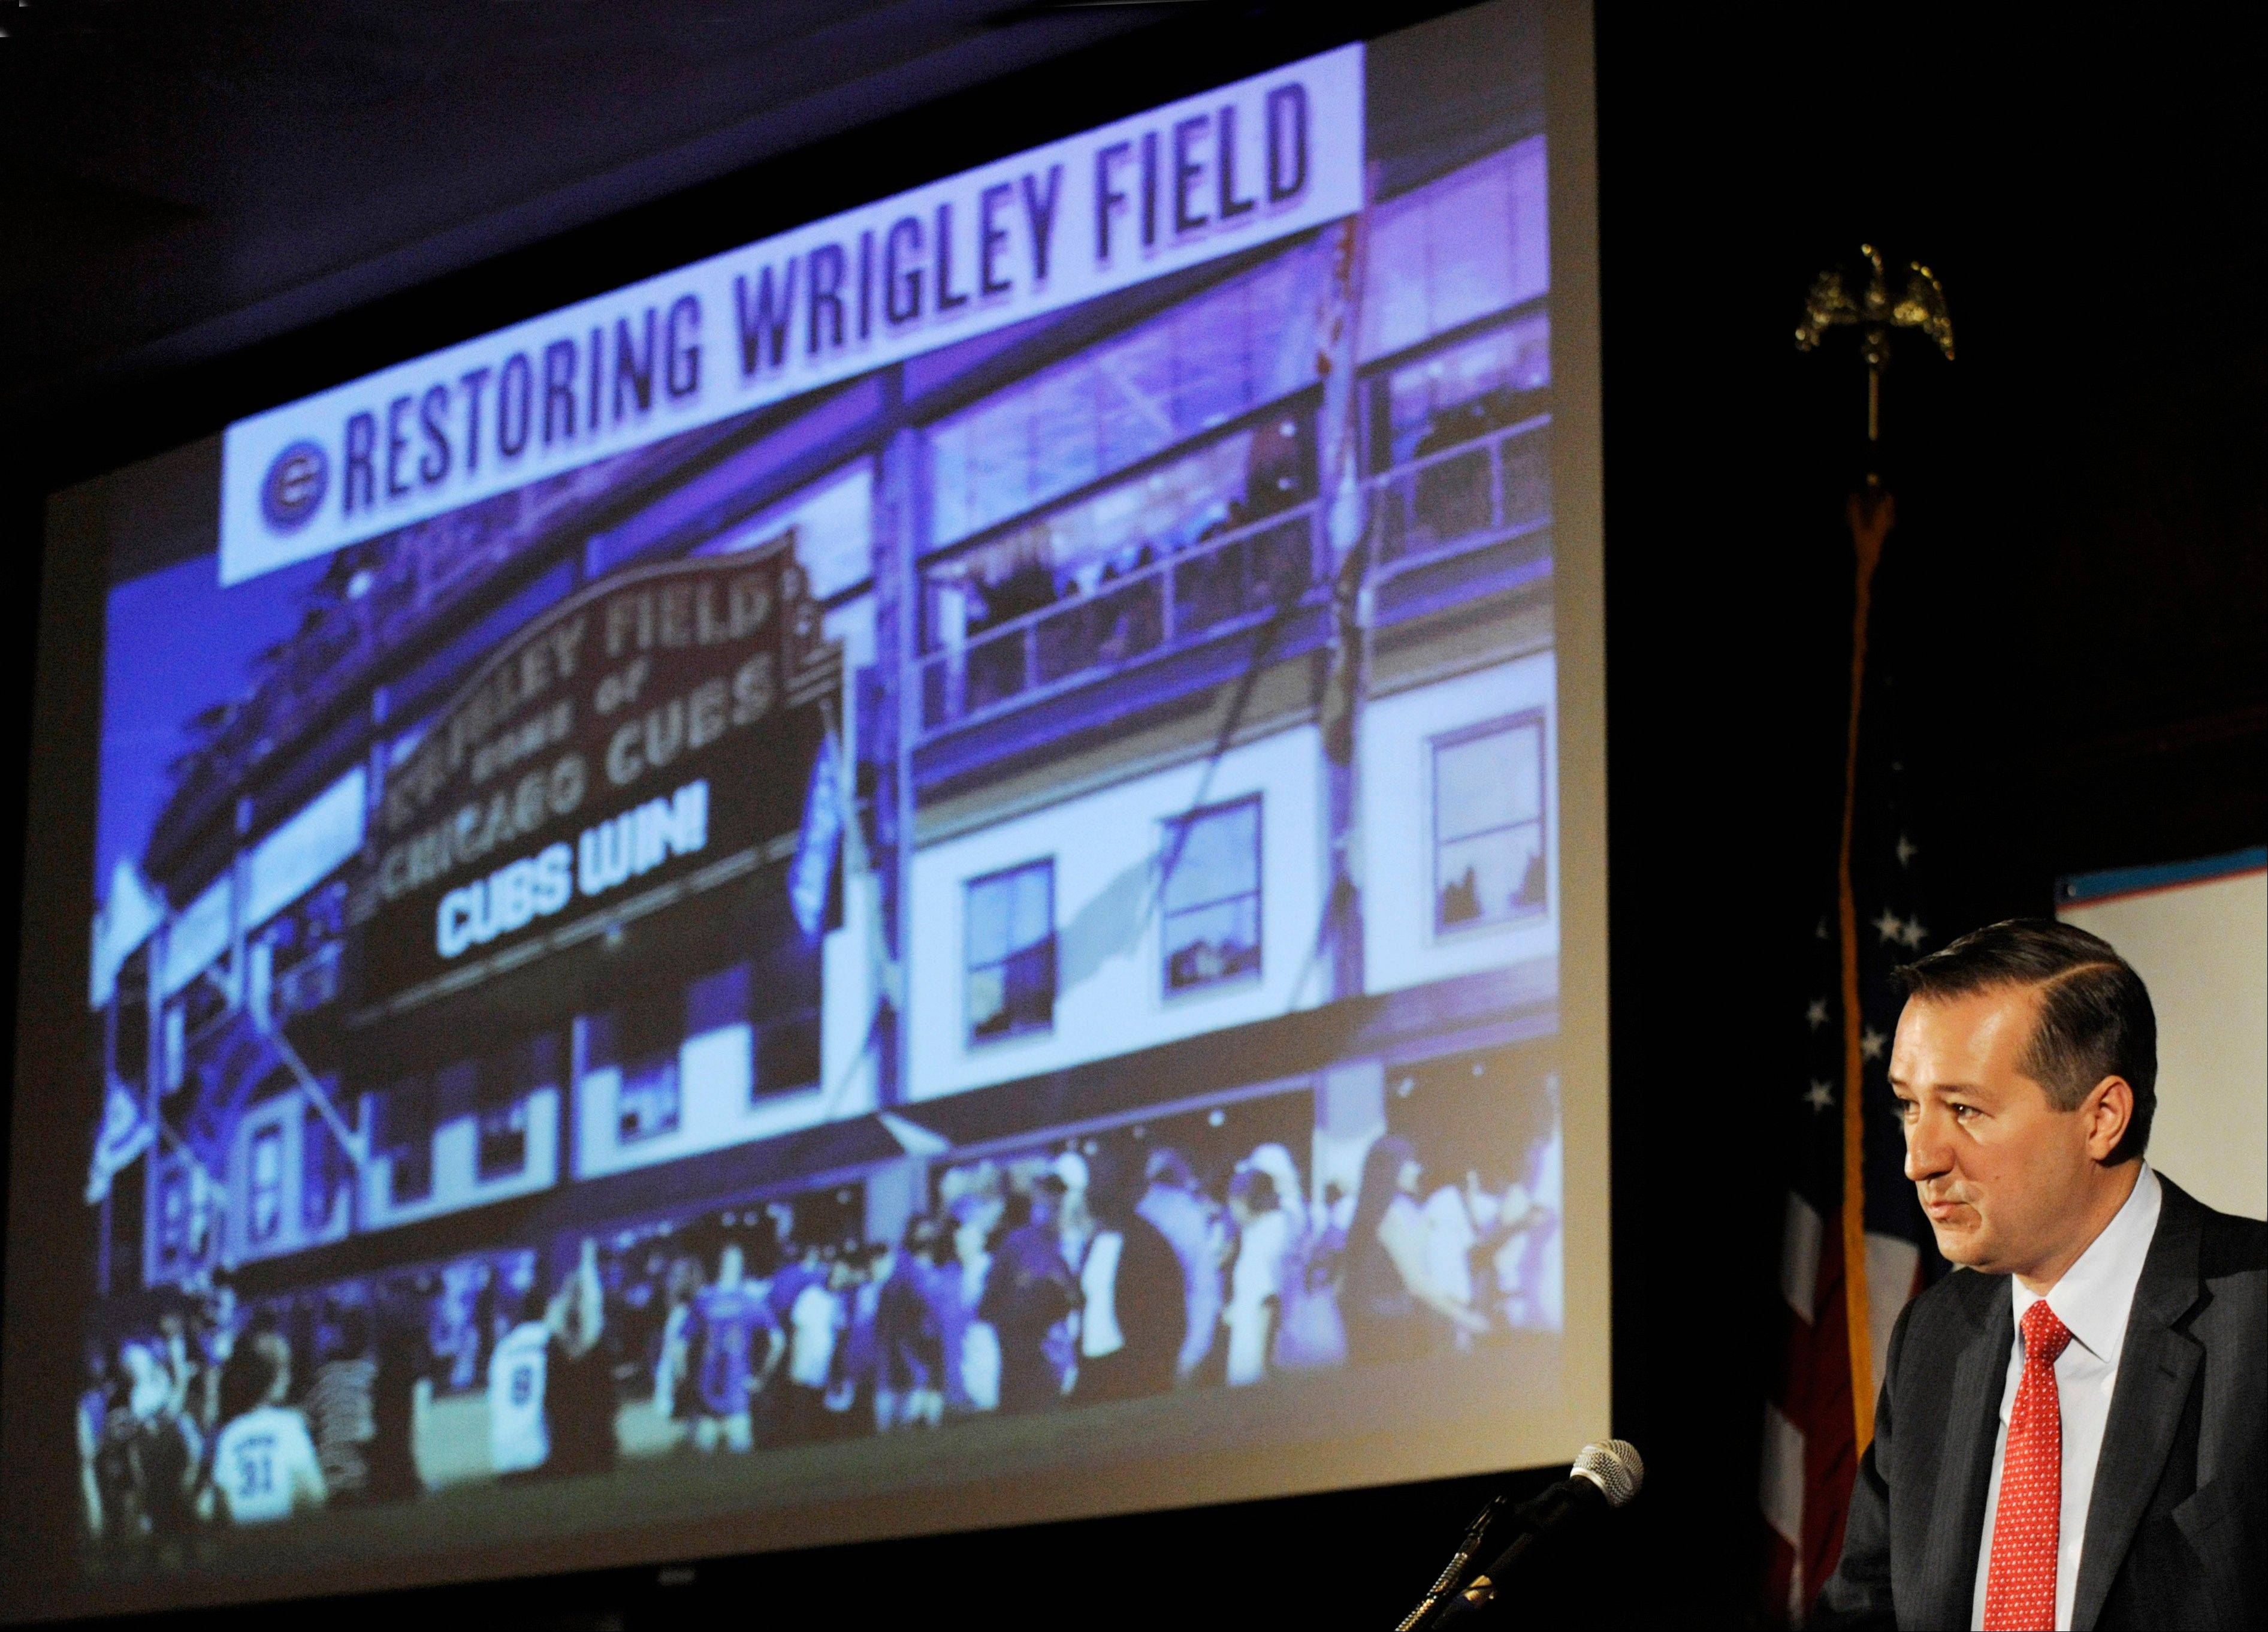 Chicago Cubs Chairman Tom Ricketts speaks in Chicago about proposed renovations at Wrigley Field. A battle is heating up between the Cubs and rooftop owners across the street from the ballpark as the team proposes renovations, including a Jumbotron in he bleachers, that would block the views and threaten the business those views have created.